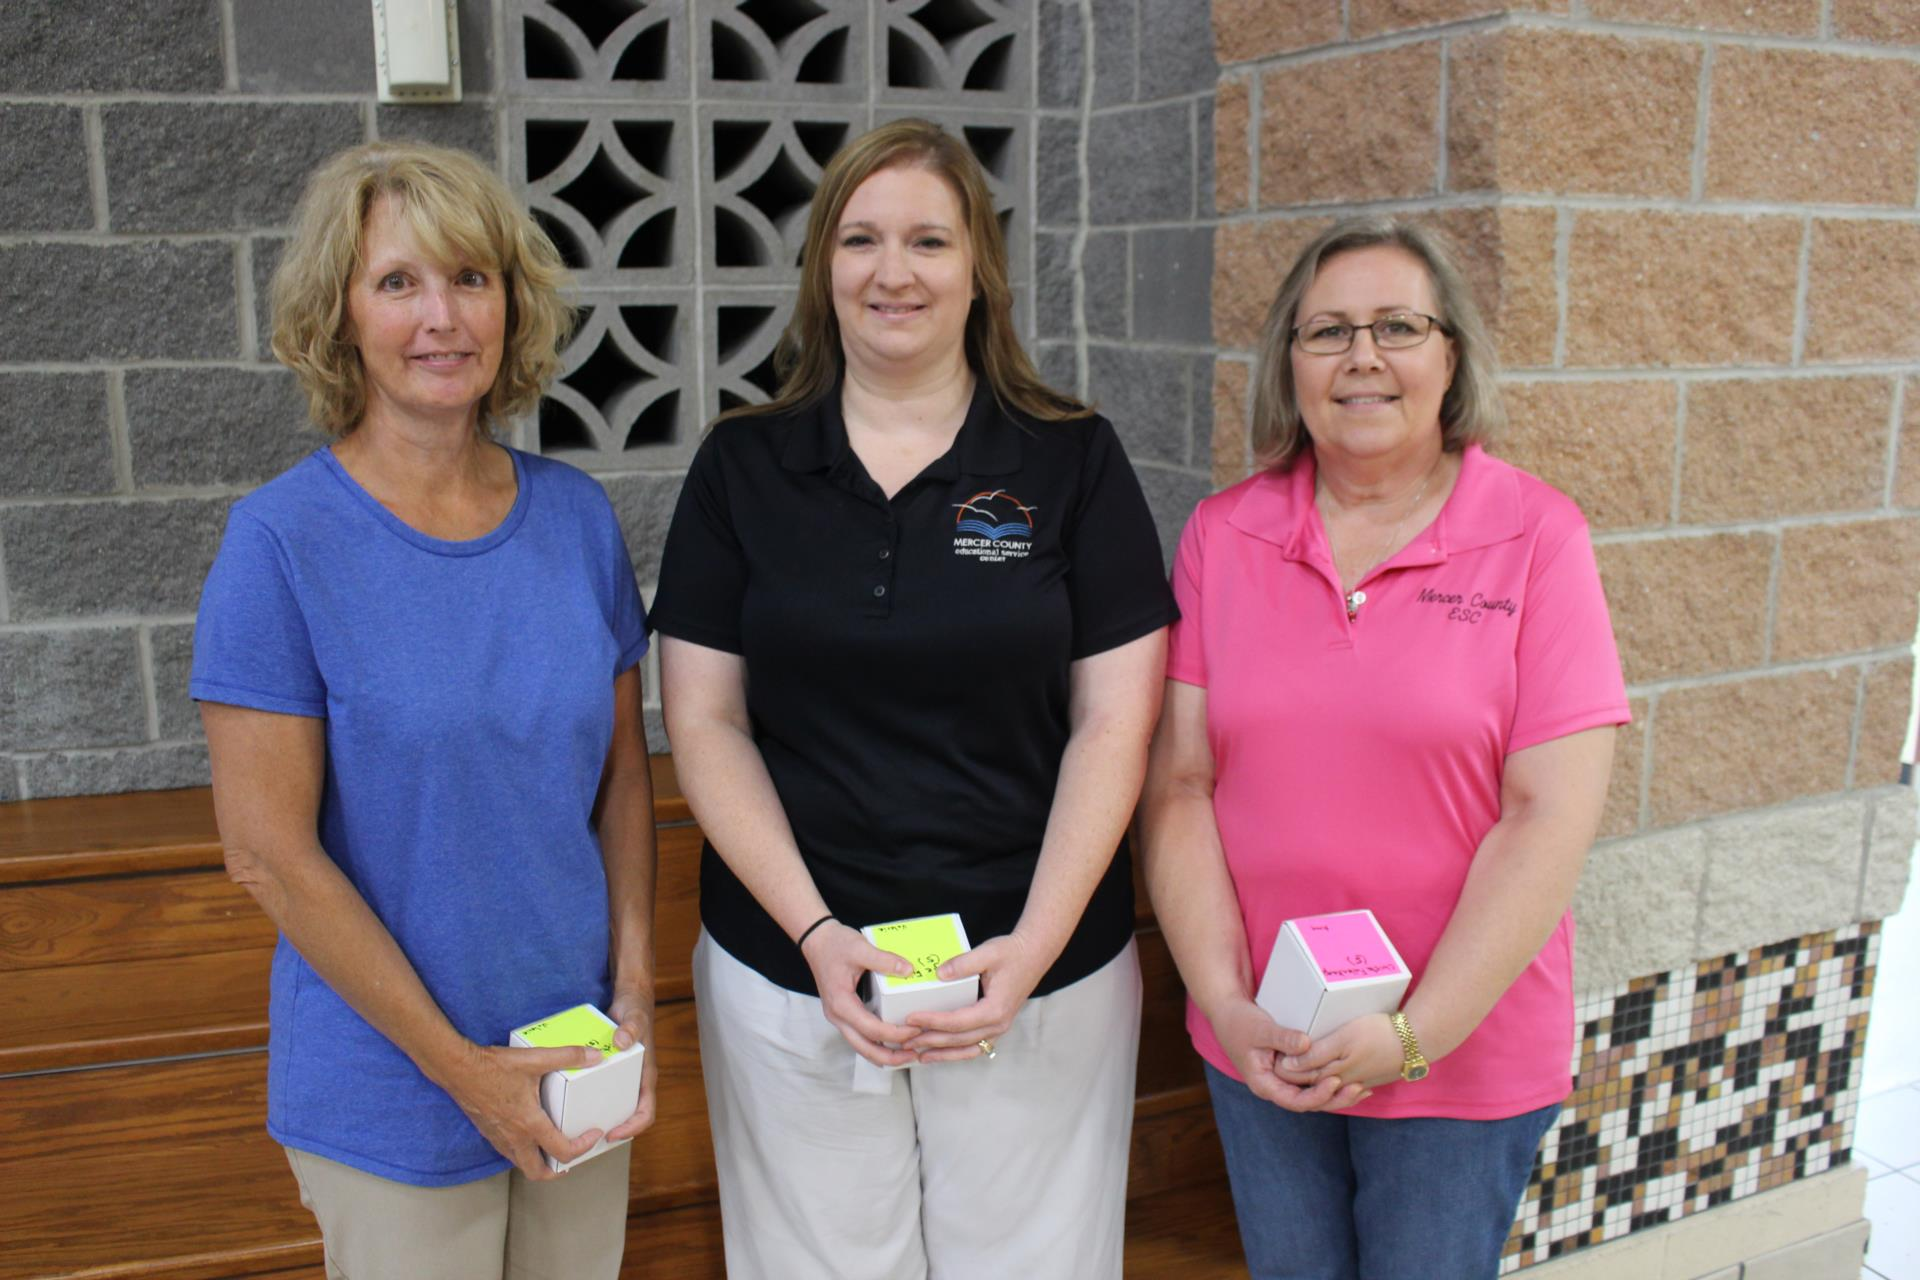 Five Years of Service: Kristy Vogel, Angie Fiely and Christa Fullenkamp  Not pictured: Lindsey Sell